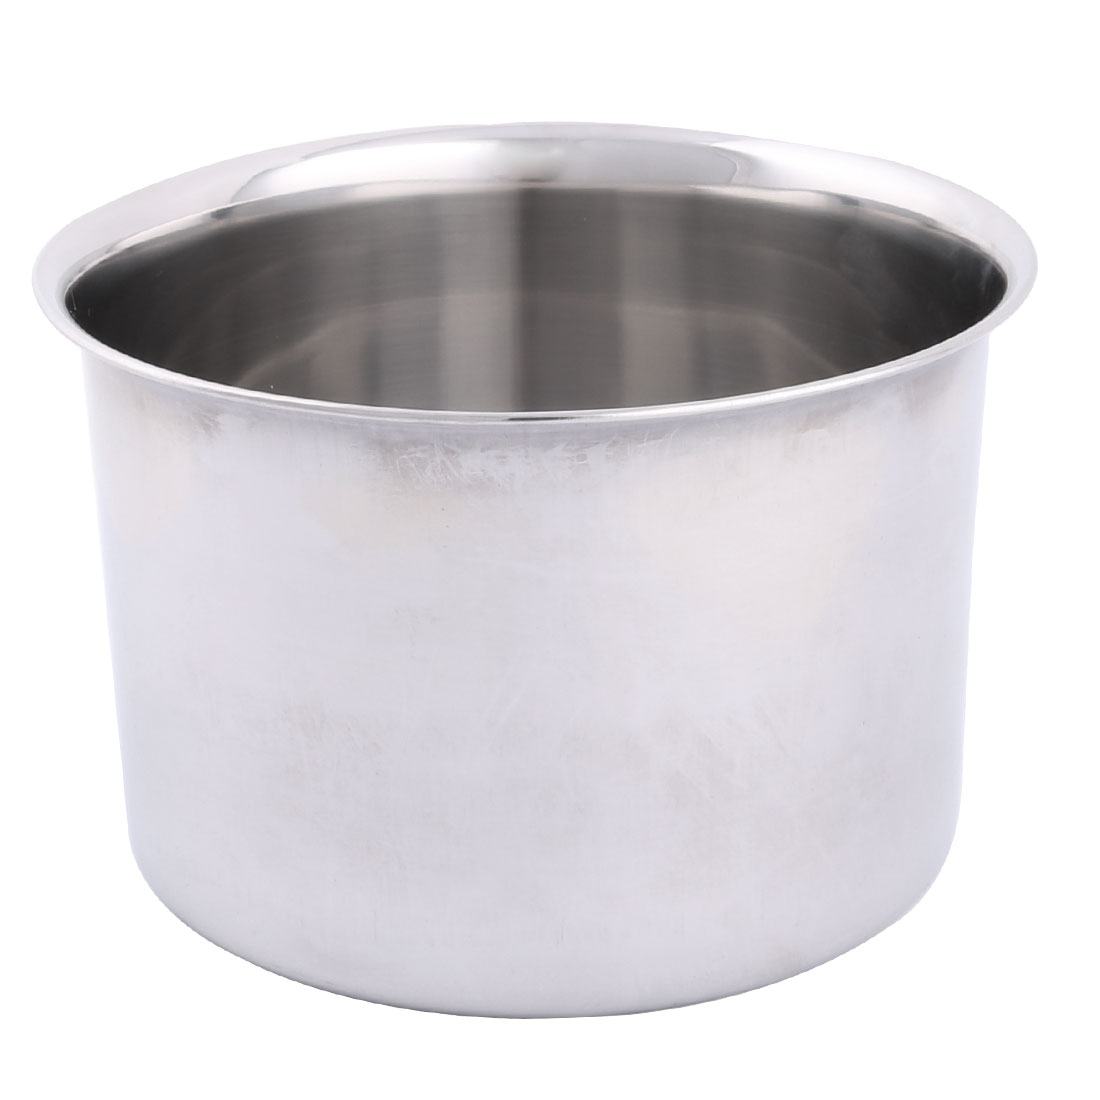 Home Restaurant Stainless Steel Round Design Porridge Food Soup Dish Plate 18cm Dia